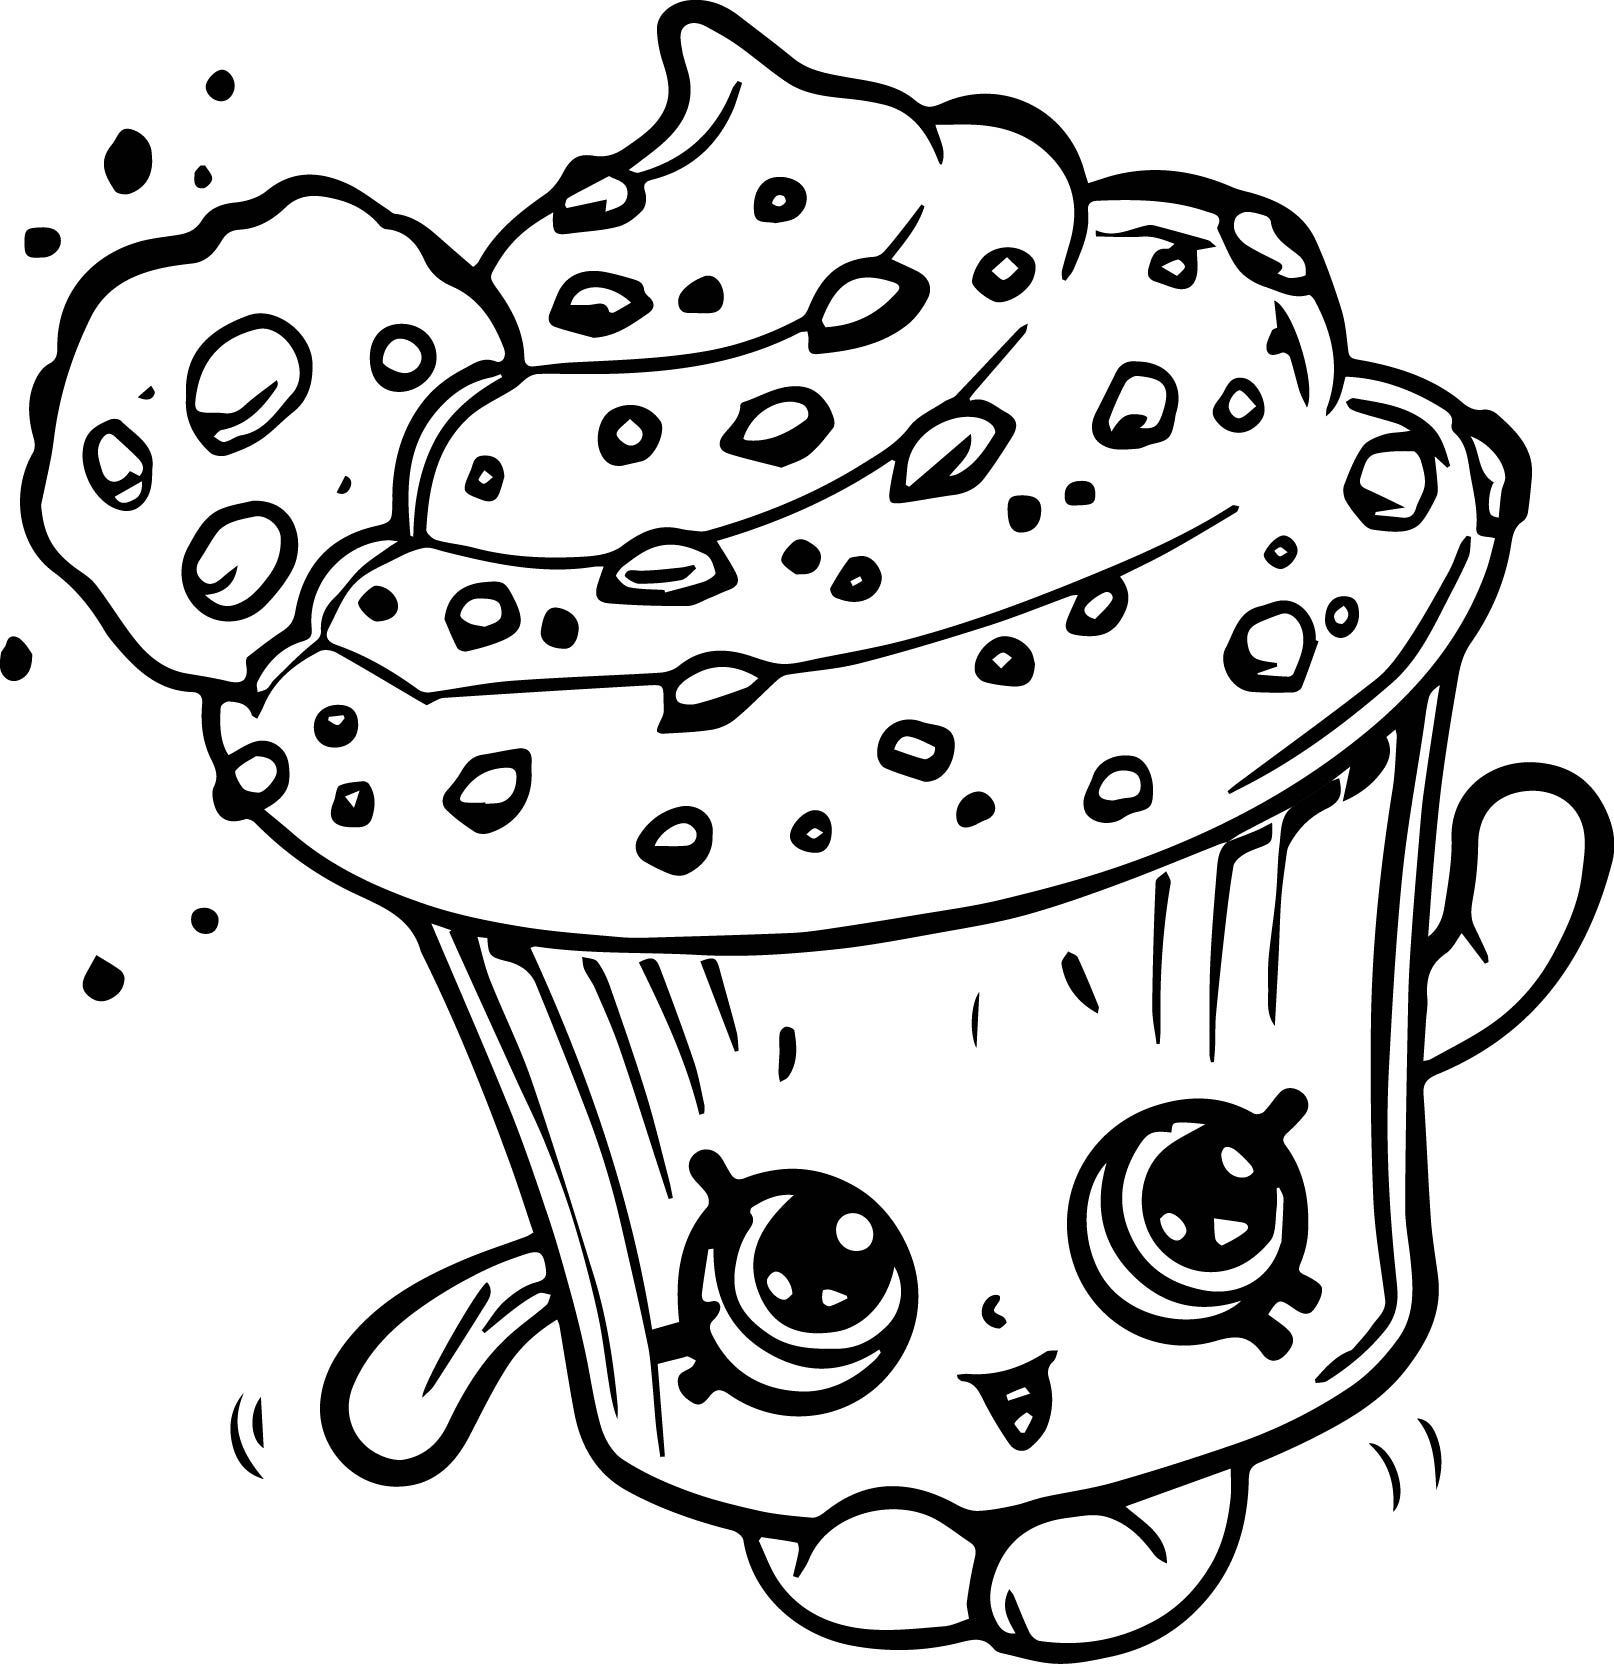 Free Shopkins Coloring Pages Printable Free Coloring Sheets Shopkin Coloring Pages Shopkins Coloring Pages Free Printable Shopkins Colouring Pages